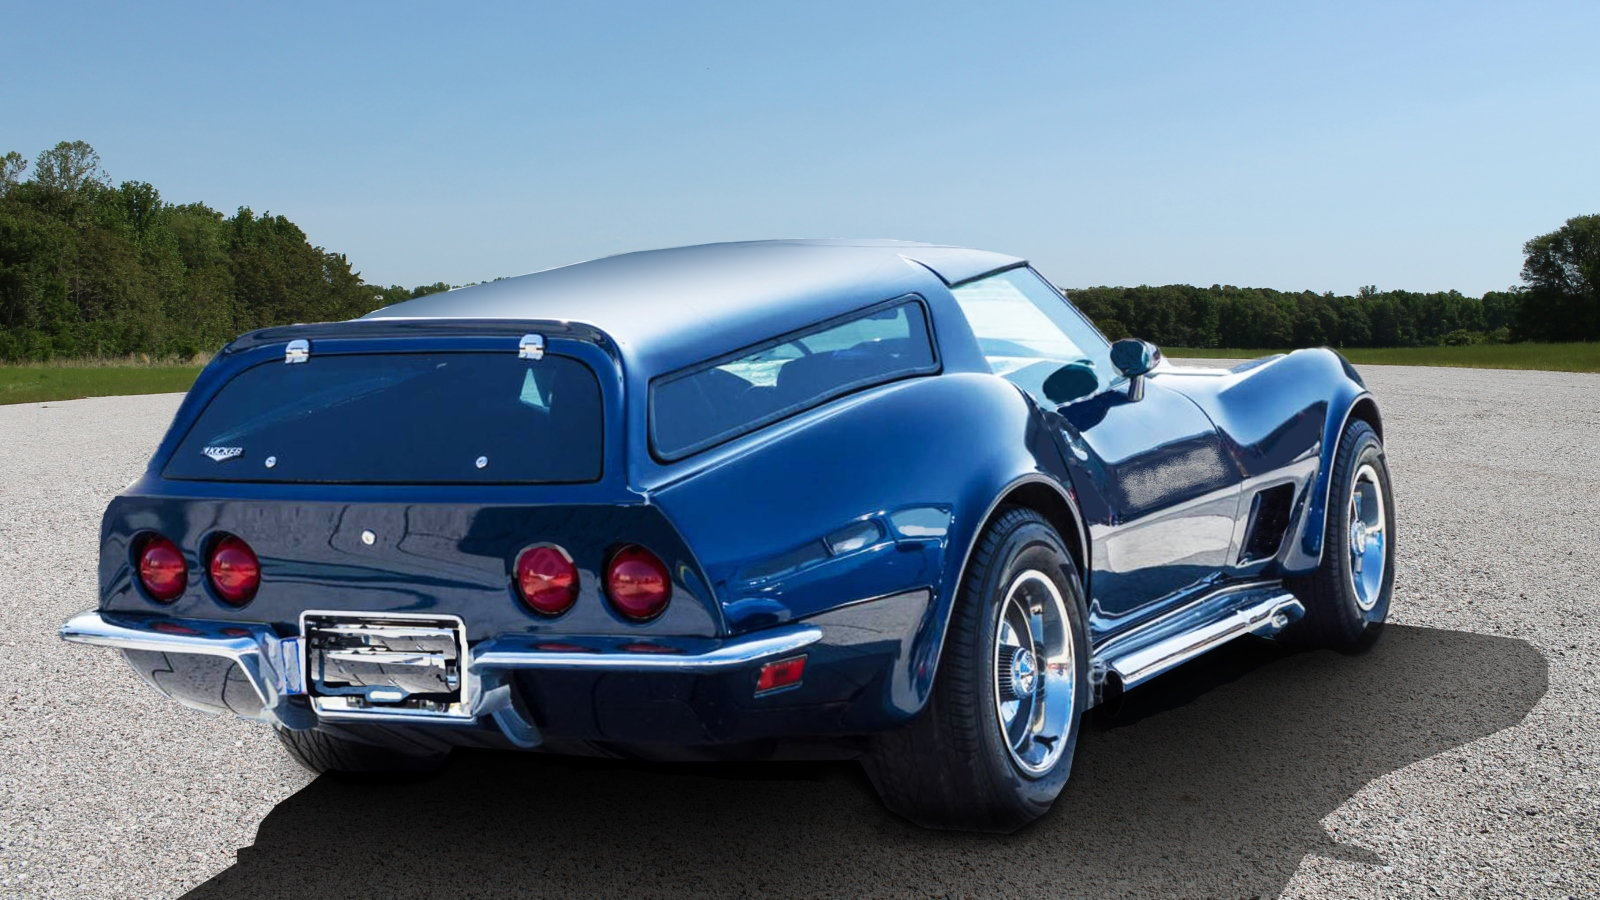 C3 Corvette Station Wagon Fit for a Drummer